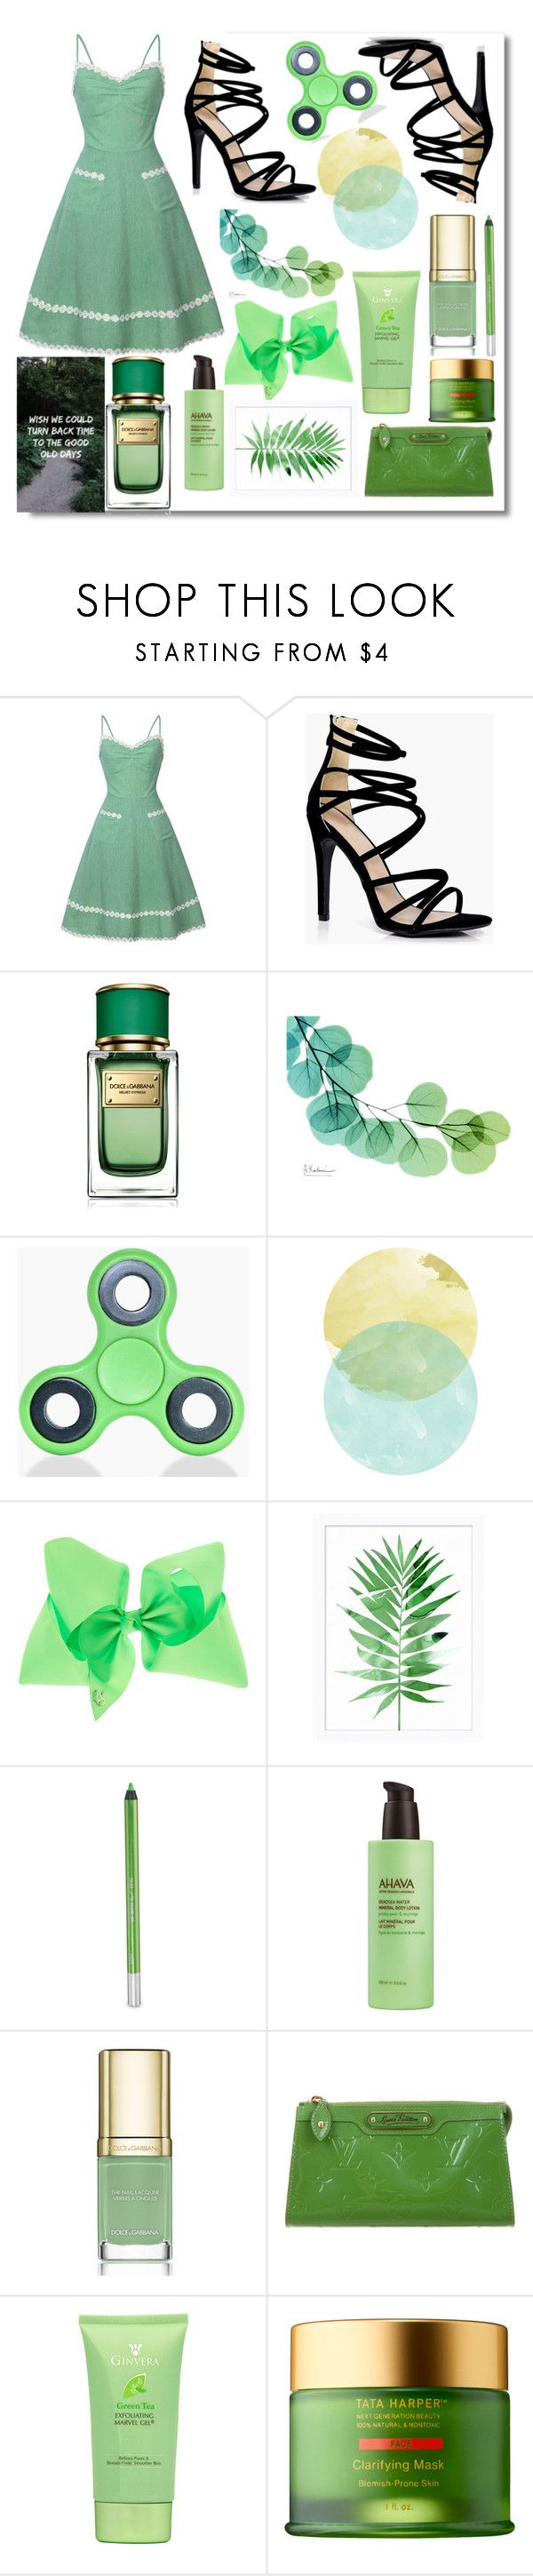 """""""Dress - Lime Green"""" by rose-chan-needs-a-life ❤ liked on Polyvore featuring Boohoo, Dolce&Gabbana, Pottery Barn, Urban Decay, Ahava, Louis Vuitton and Tata Harper"""